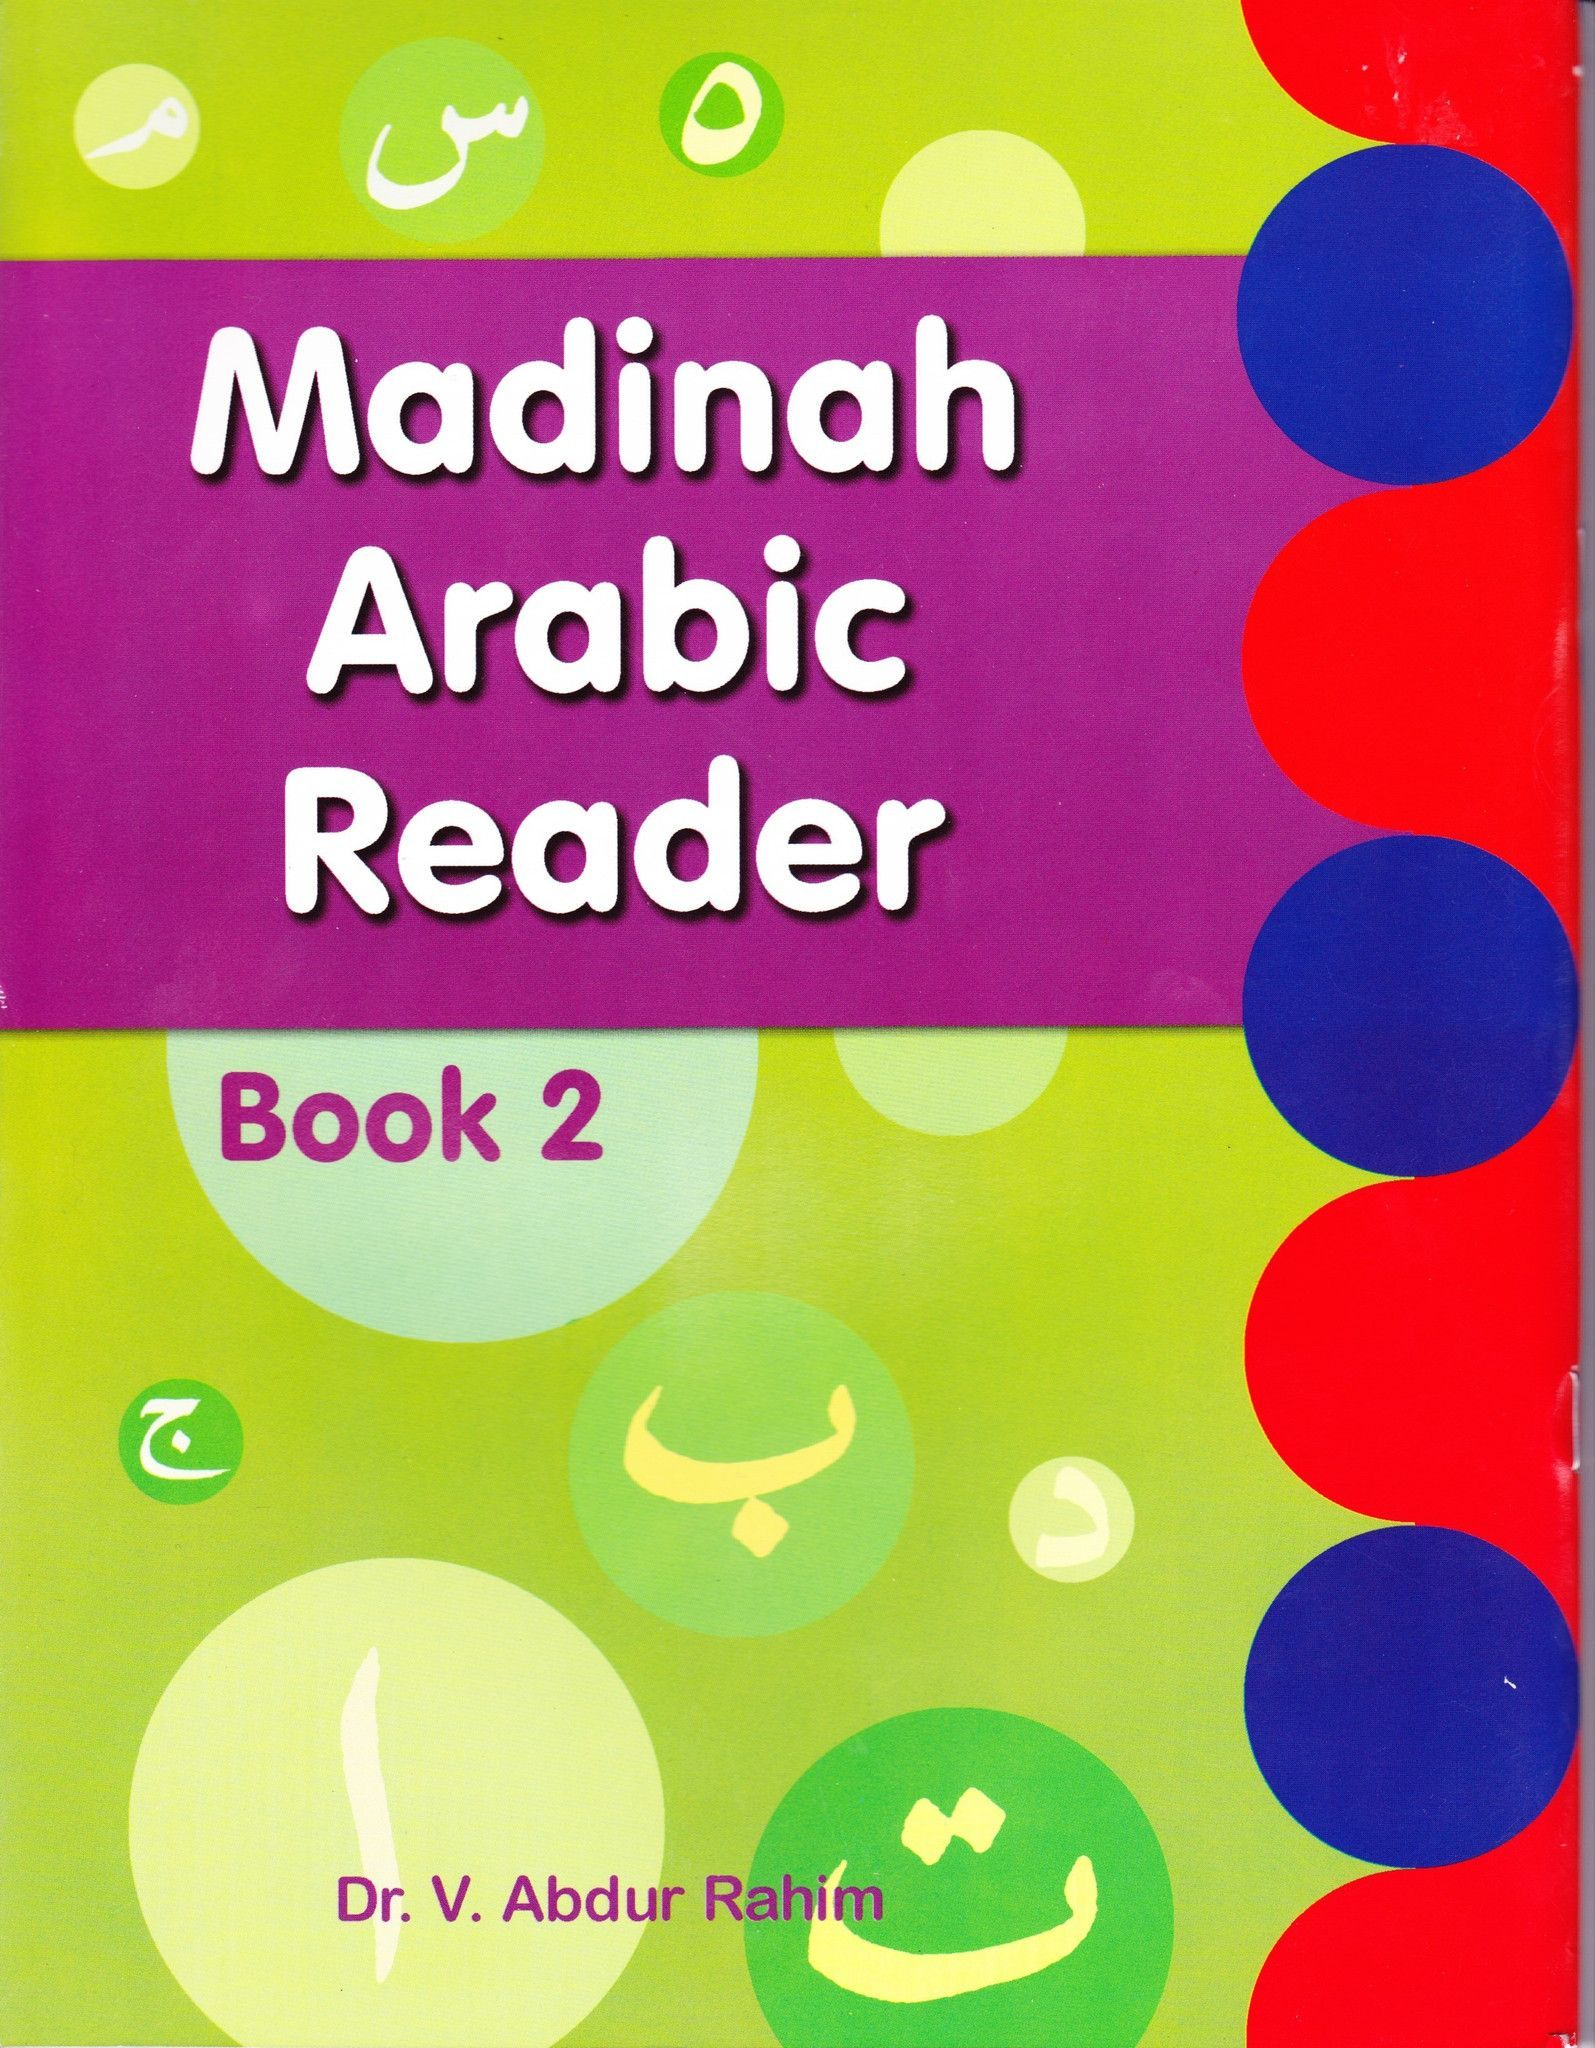 Madinah Arabic Reader Book 2 | Books, Language, Books online